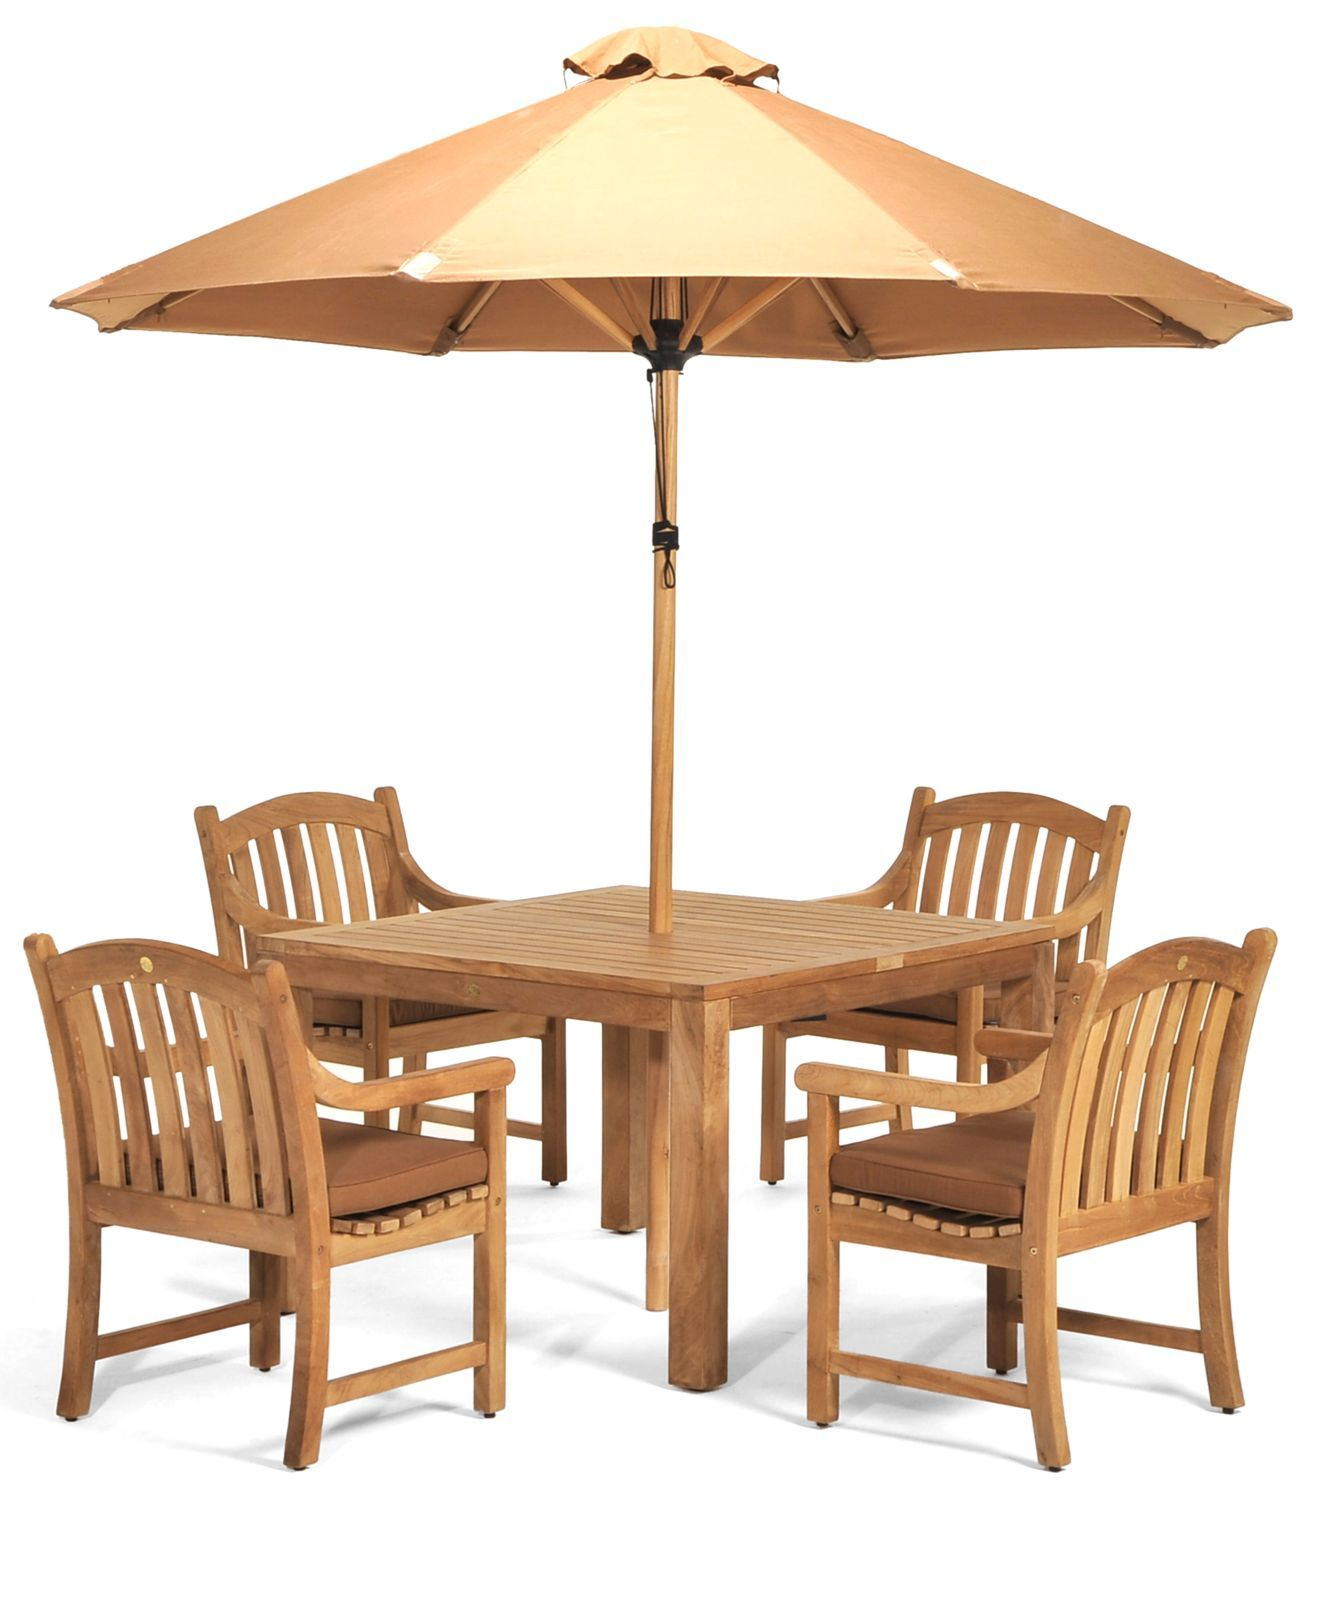 Bristol Teak Outdoor Patio Furniture Everyone Deserves A Comfy Chair Even Outside